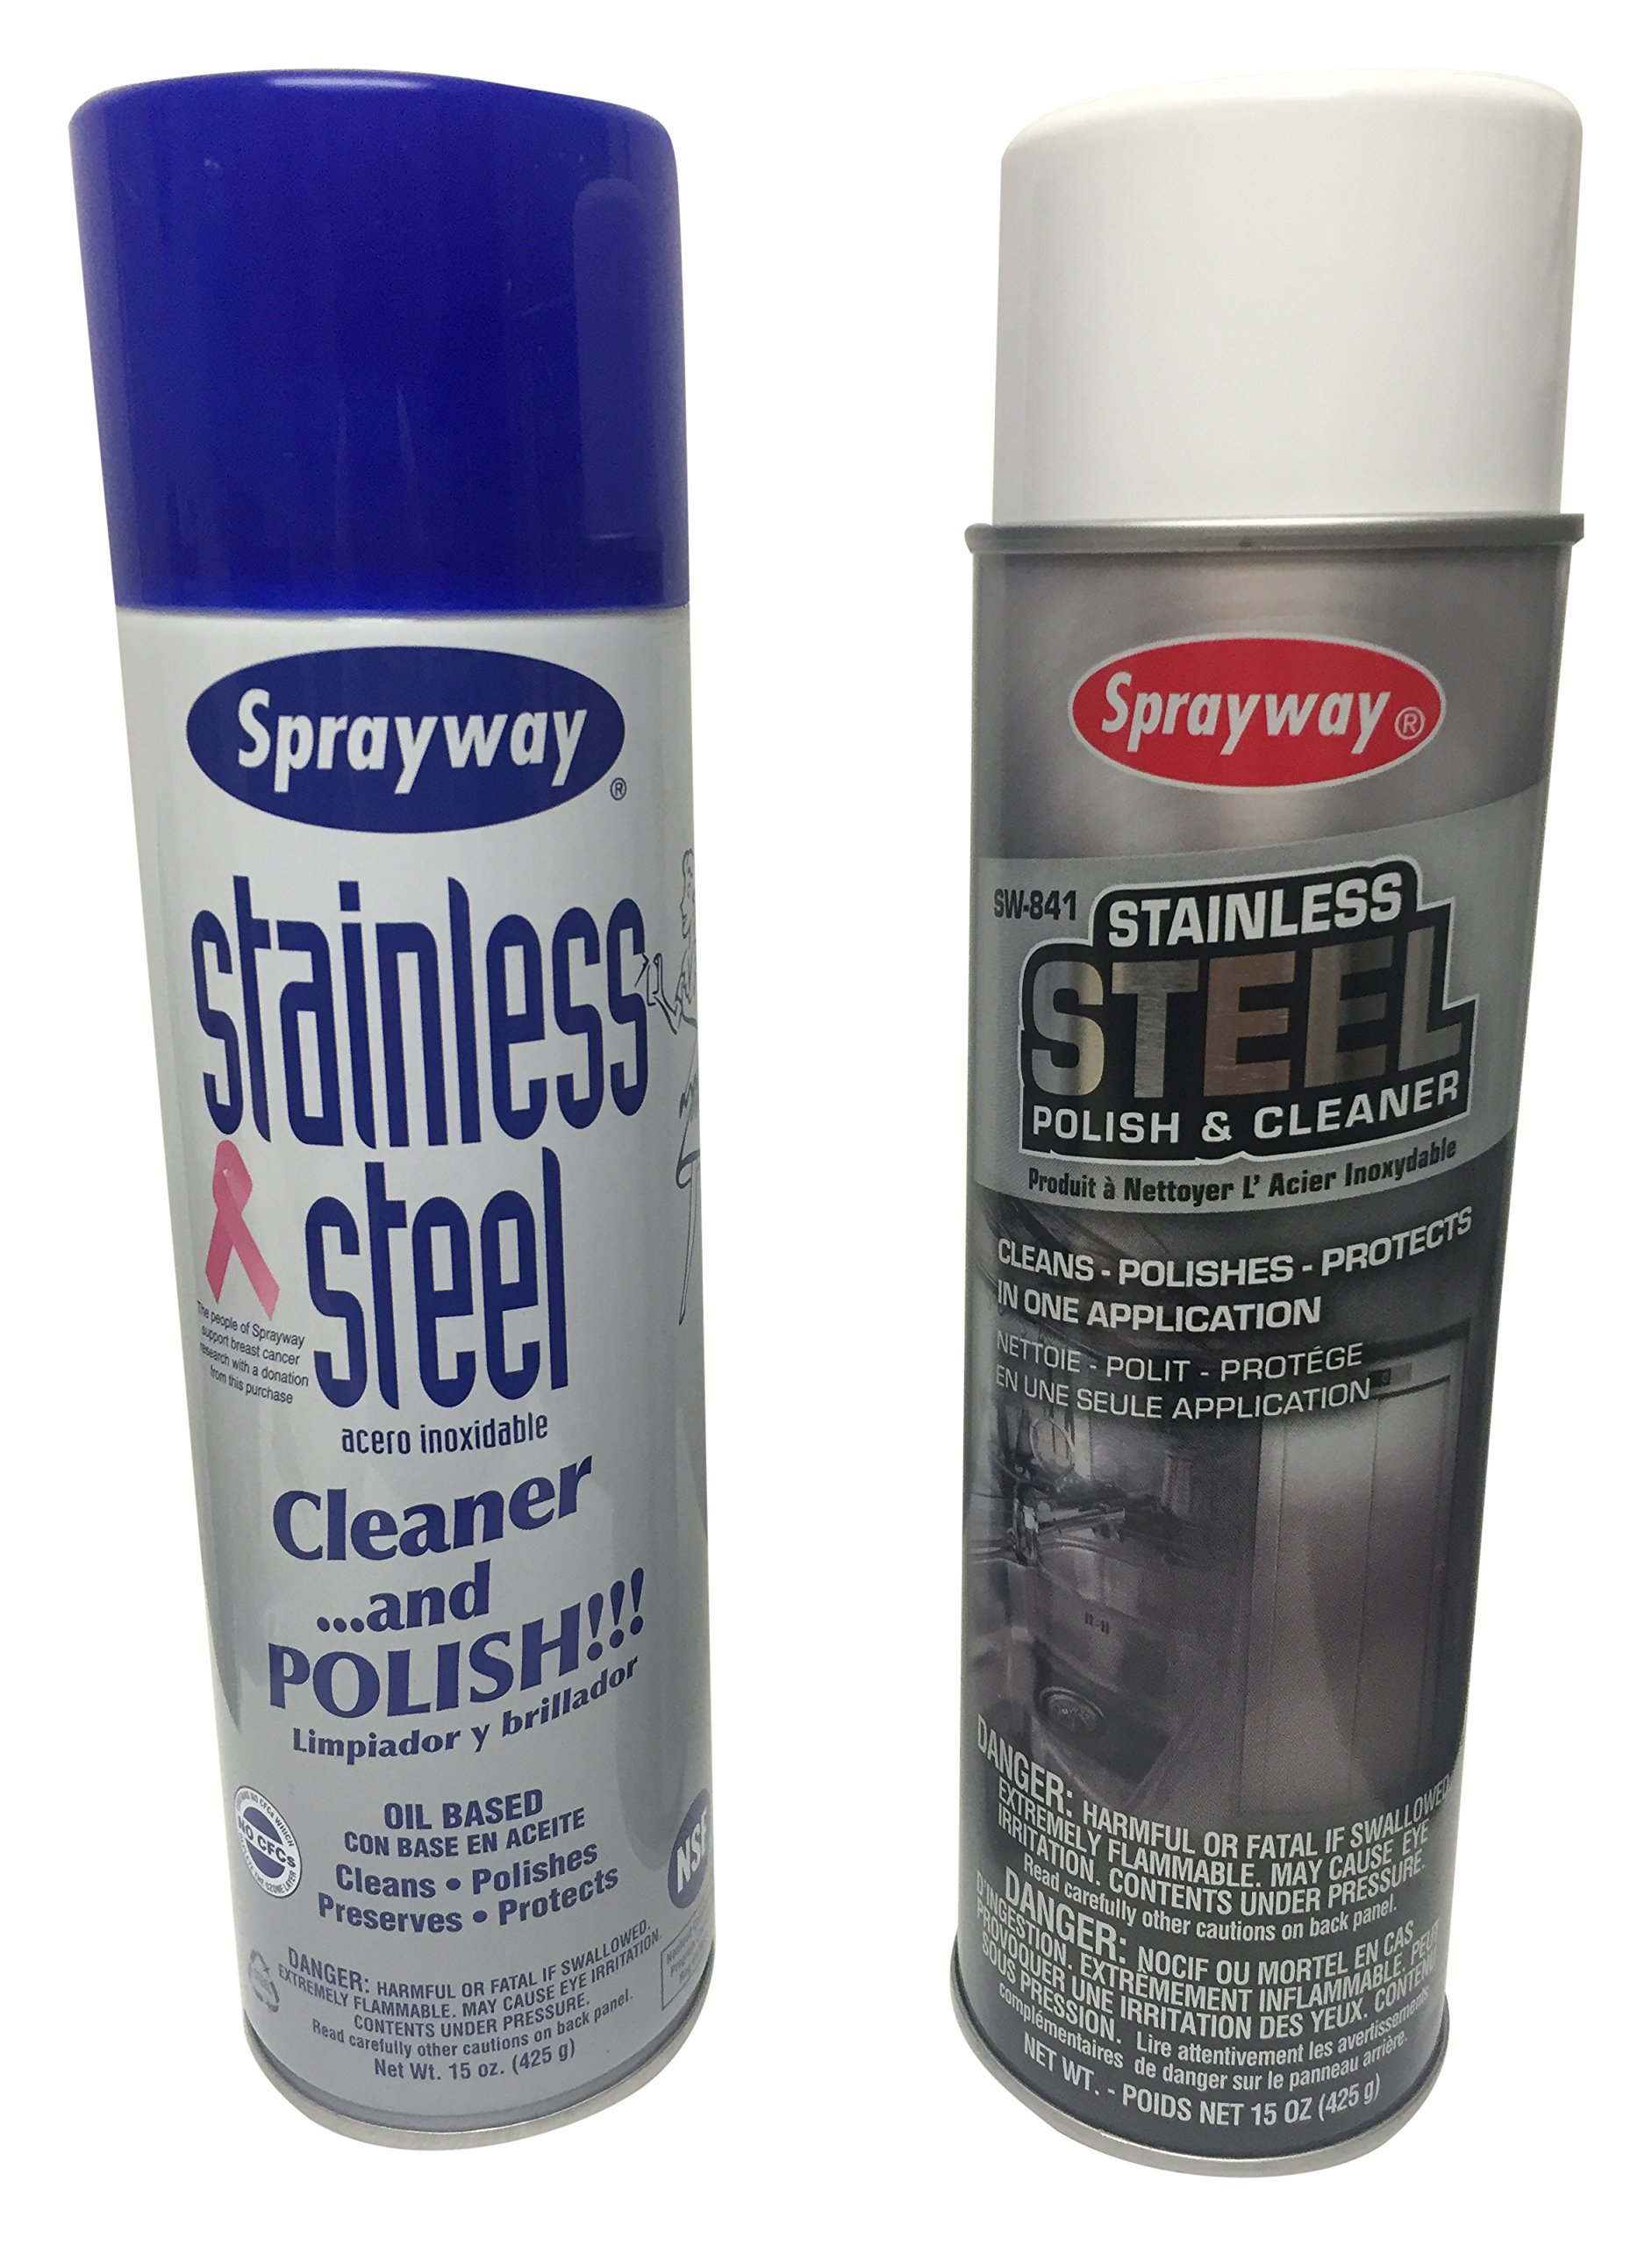 10 X 15oz Sprayway Stainless Steal Cleaner and Polish (package may vary) by Sprayway (Image #1)